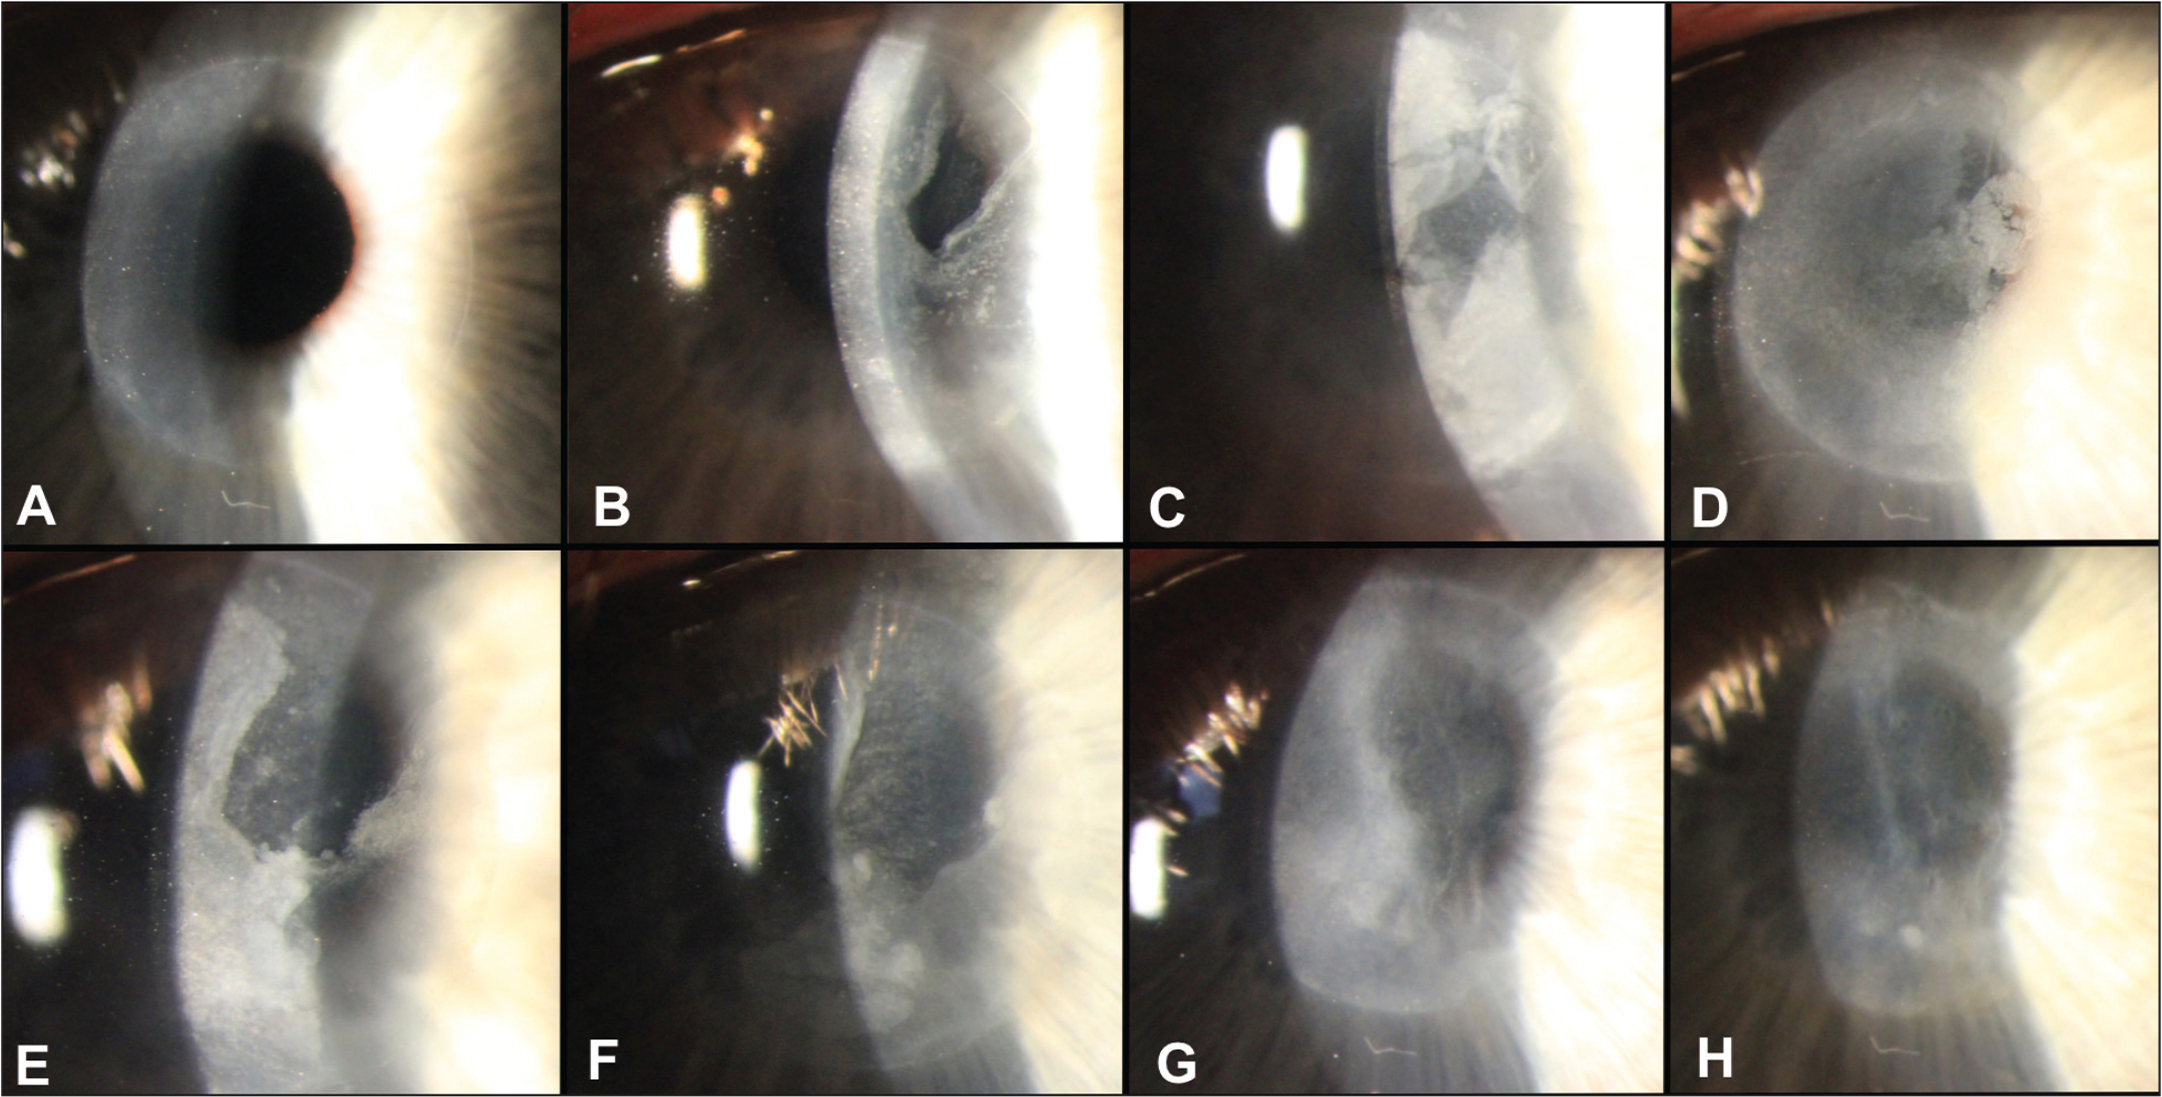 (A) Corneal inlay 8 years after implantation. (B) Corneal inlay with partial flap melt 9 years after implantation and immediately before explantation. (C) Cornea 1 day after explantation. (D) Cornea 4 days after explantation. (E) Cornea 2 weeks after explantation. (F) Cornea 4 weeks after explantation. (G) Cornea 2 months after explantation. (H) Cornea 1 year after explantation.